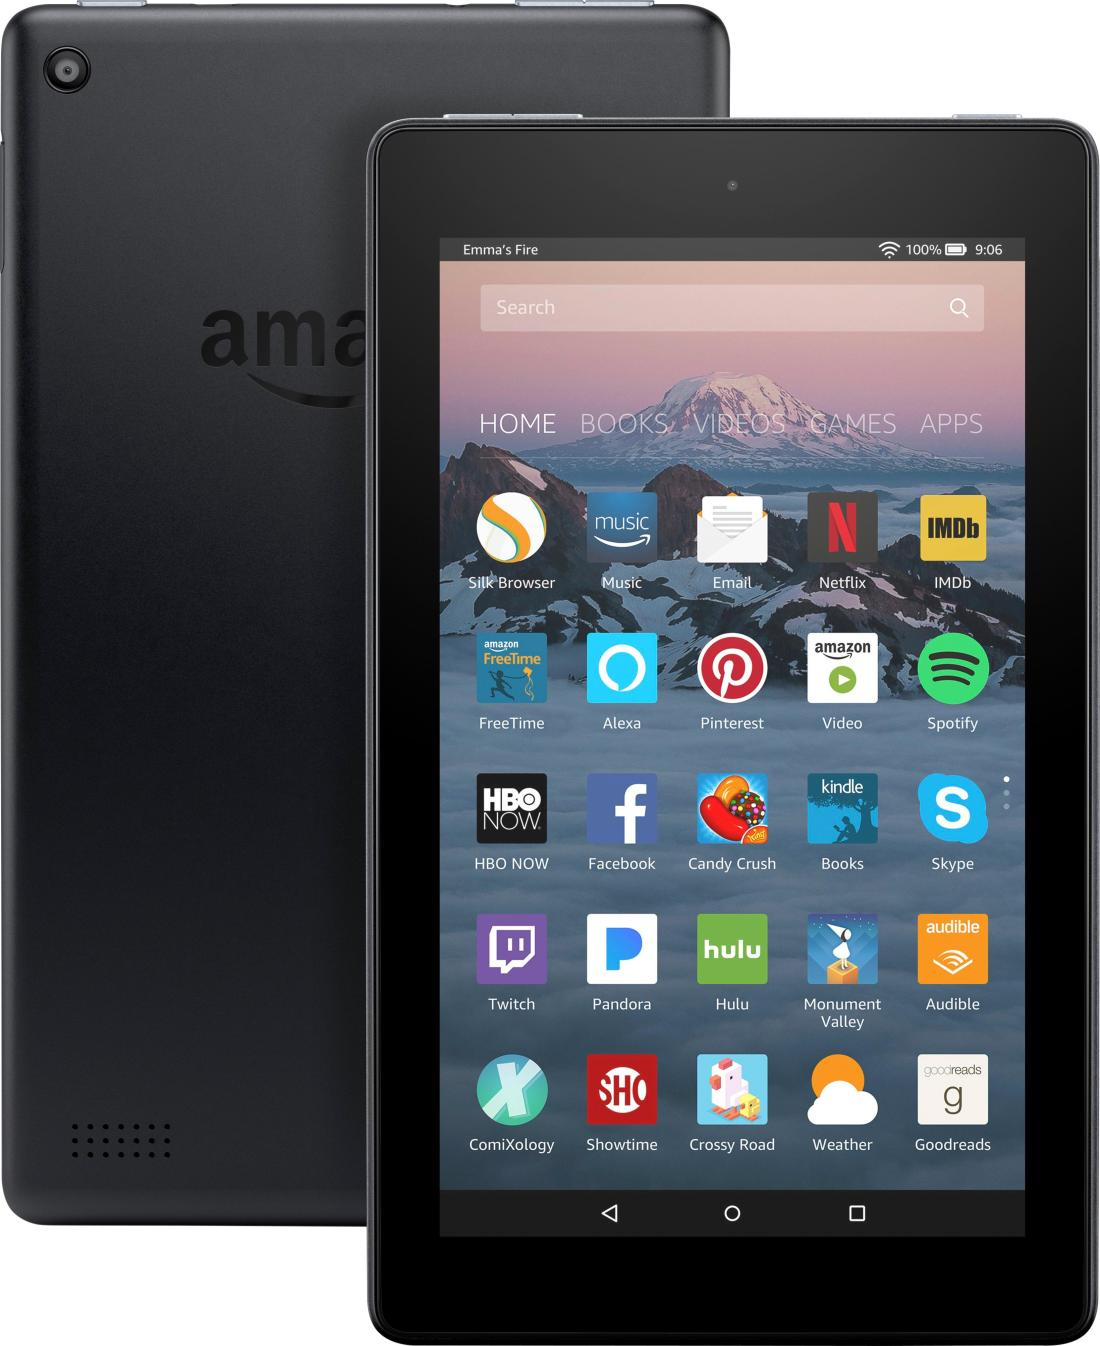 Amazon Fire 7 8 GB